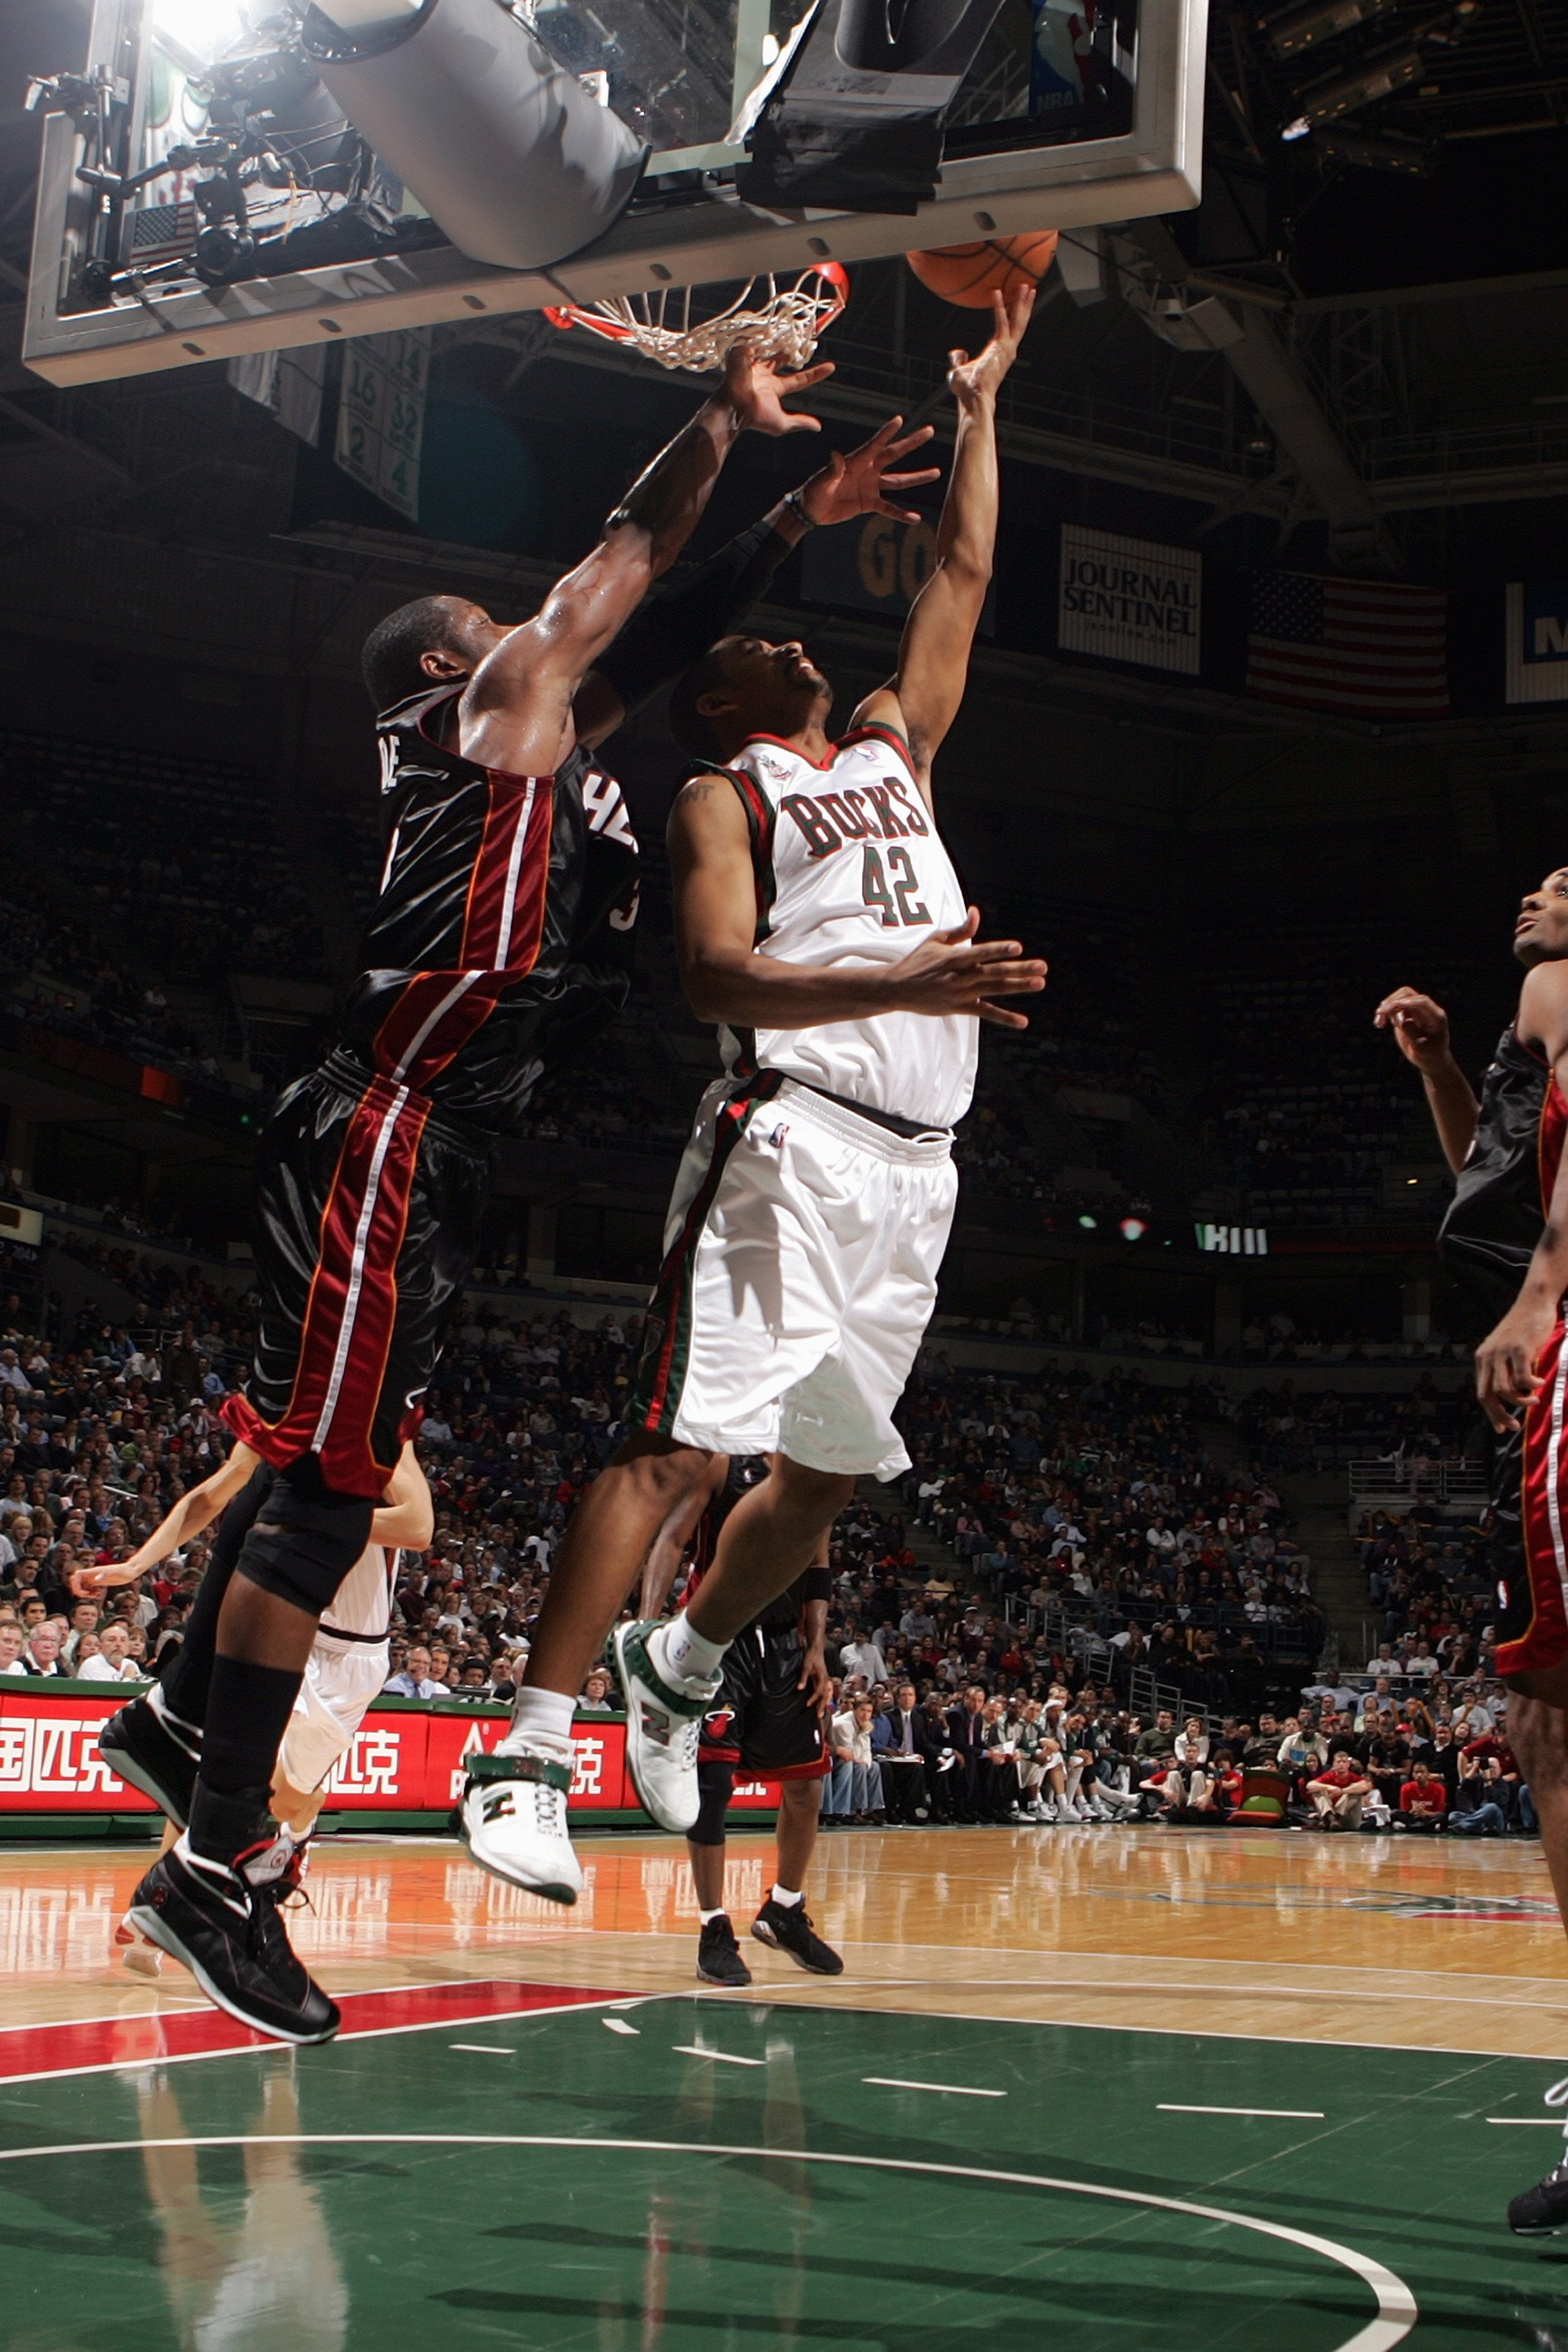 MILWAUKEE - JANUARY 9:  Charlie Bell #42 of the Milwaukee Bucks lays up a shot against Dwyane Wade #3 of the Miami Heat during the game at the Bradley Center on January 9, 2008 in Milwaukee, Wisconsin.  The Bucks won 98-92.  NOTE TO USER: User expressly a